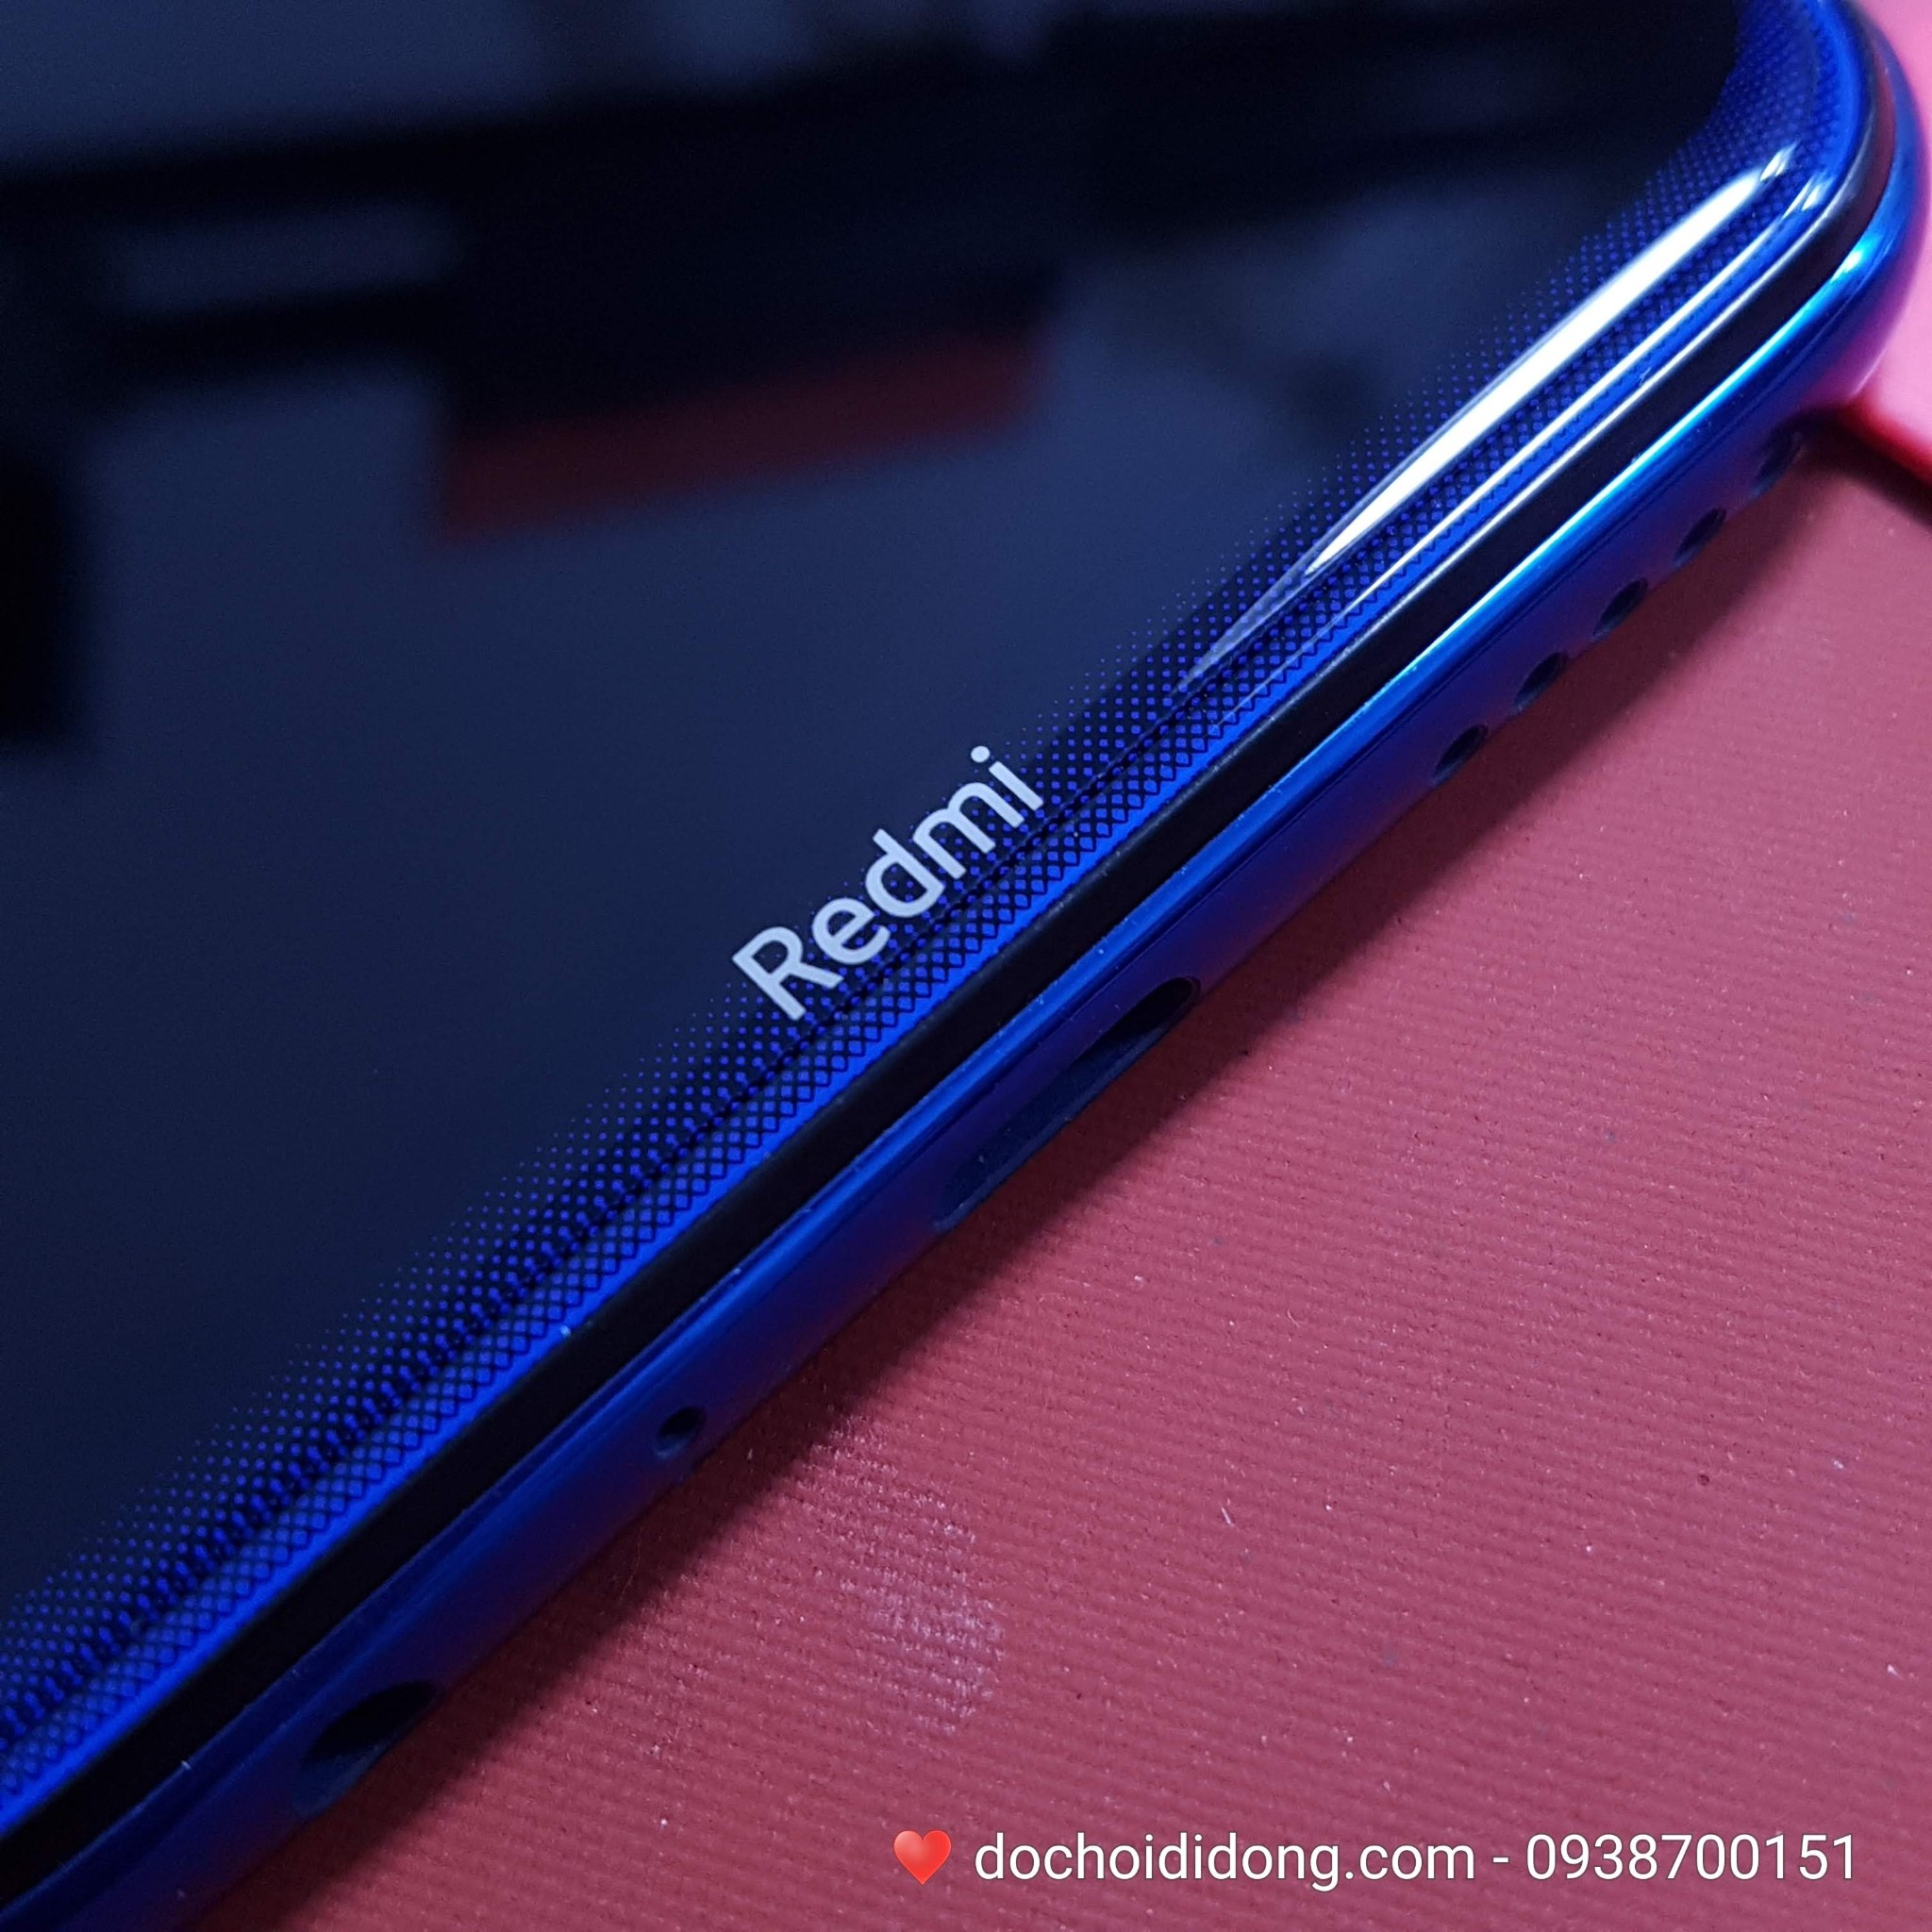 dan-cuong-luc-xiaomi-redmi-note-8-zacase-all-clear-true-2-5d